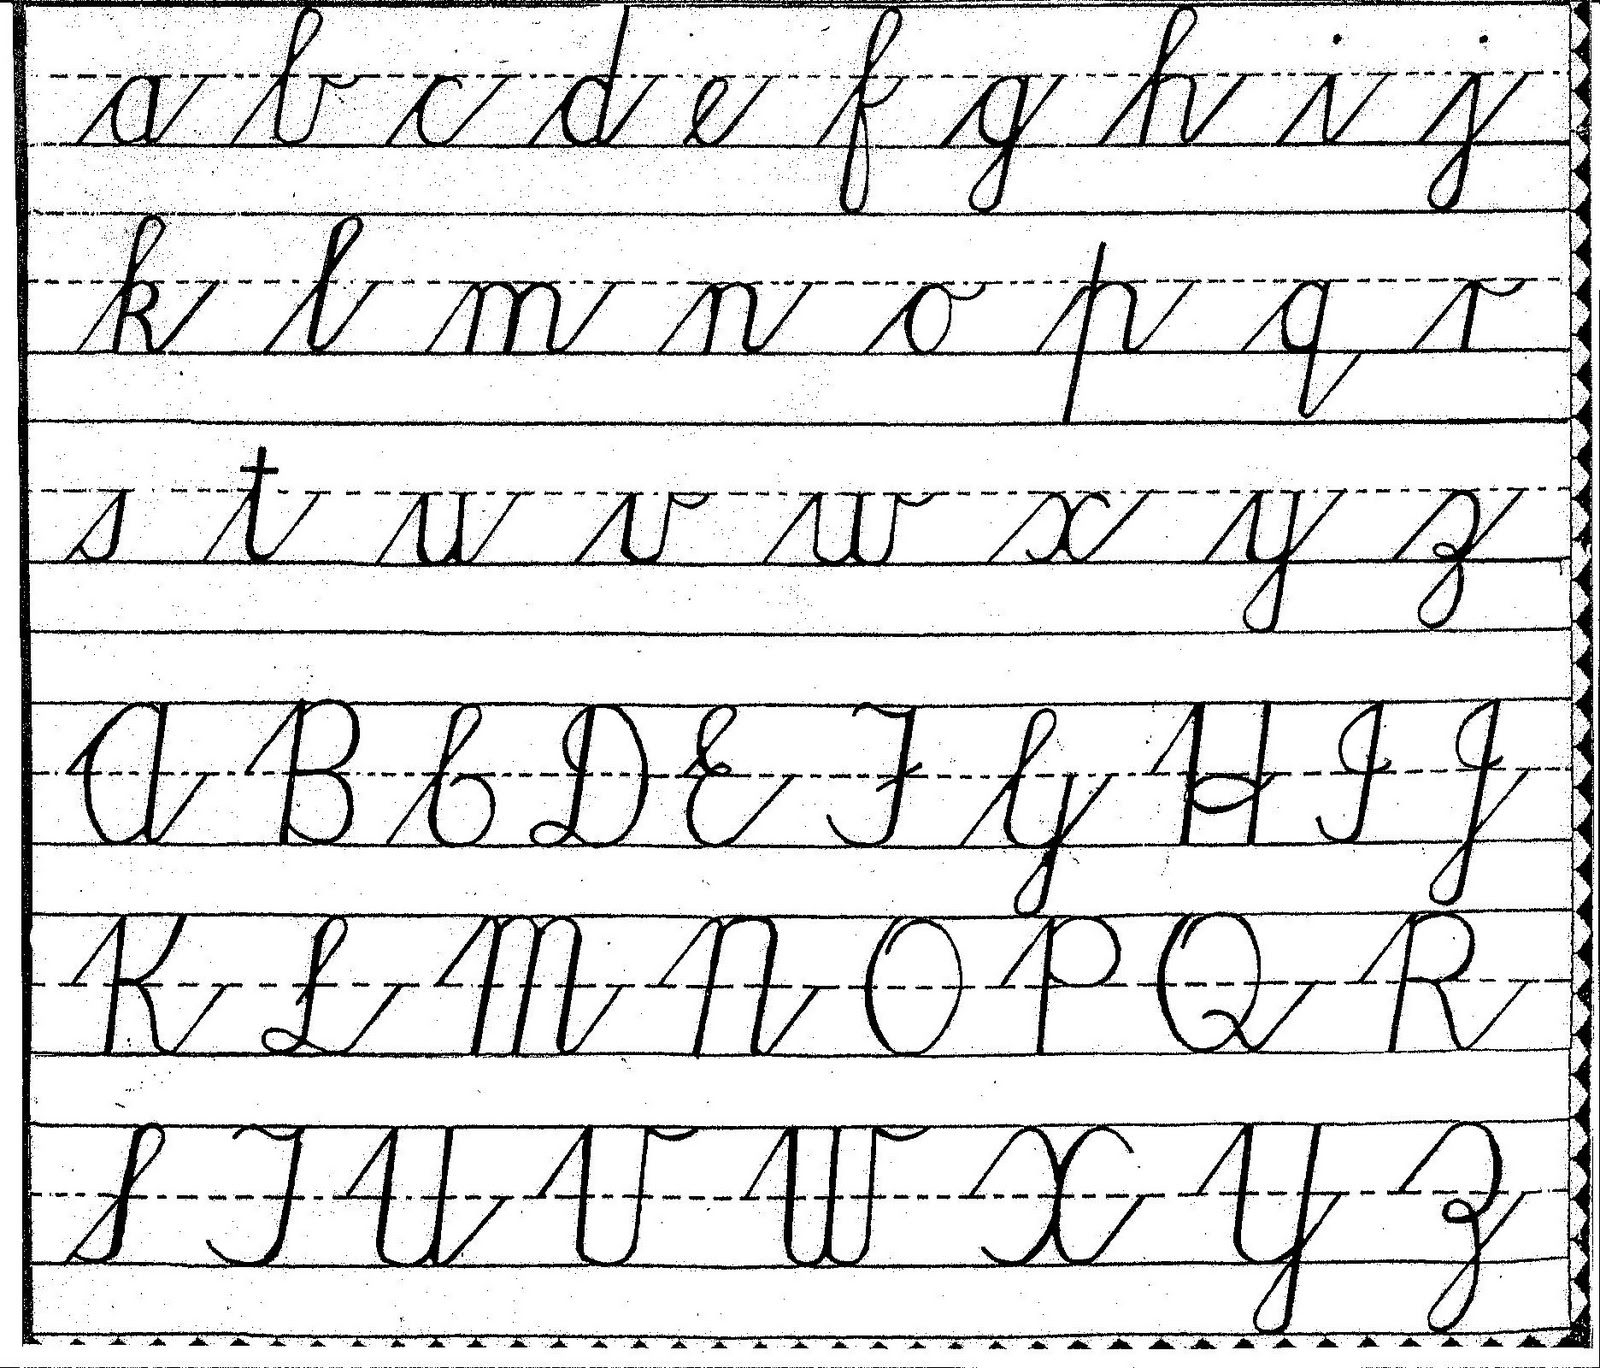 Worksheets : Image Result For Cursive To Handwriting